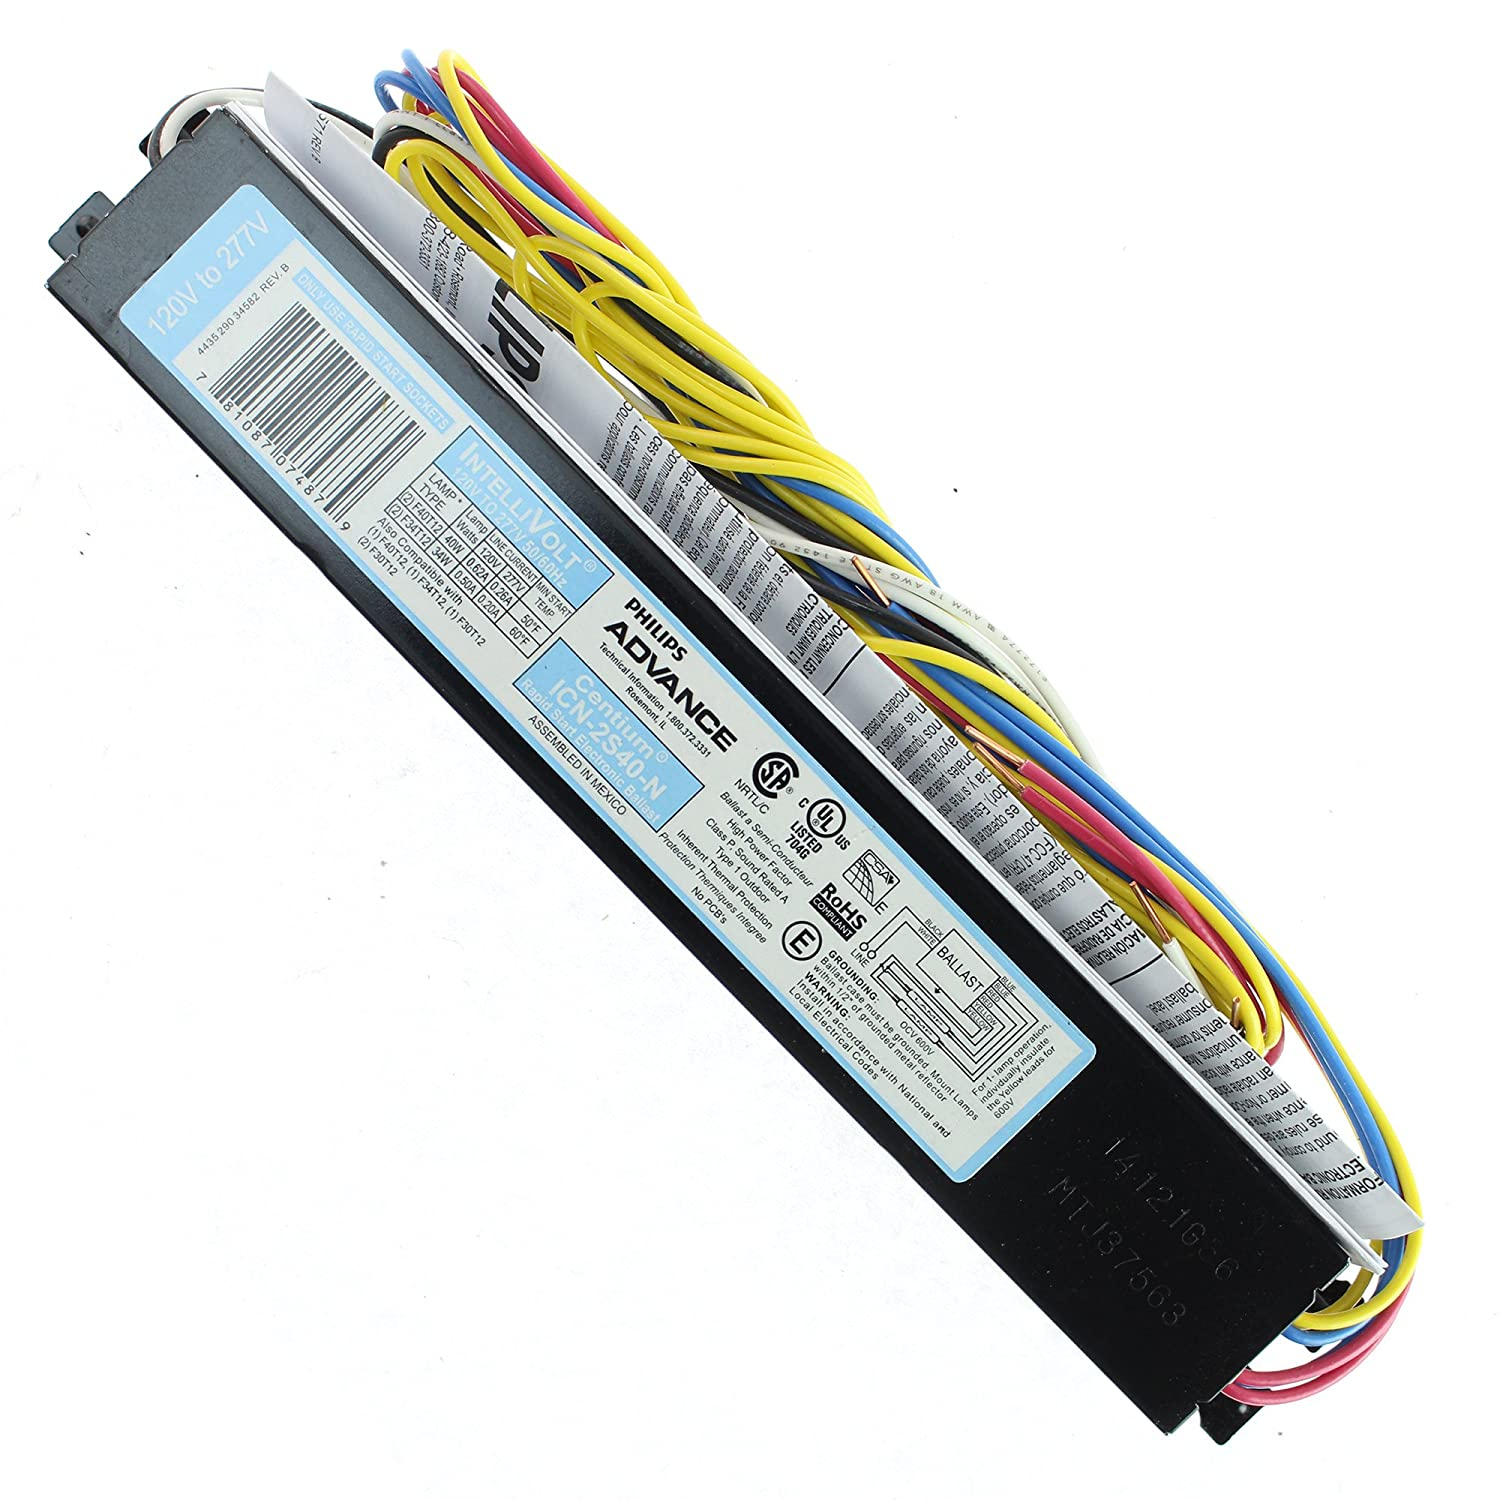 8185Jdr2HJL._SL1500_ advance icn 2s40 n centium fluorescent ballast for 2x40w t12 philips advance centium icn-2s40-n wiring diagram at cos-gaming.co